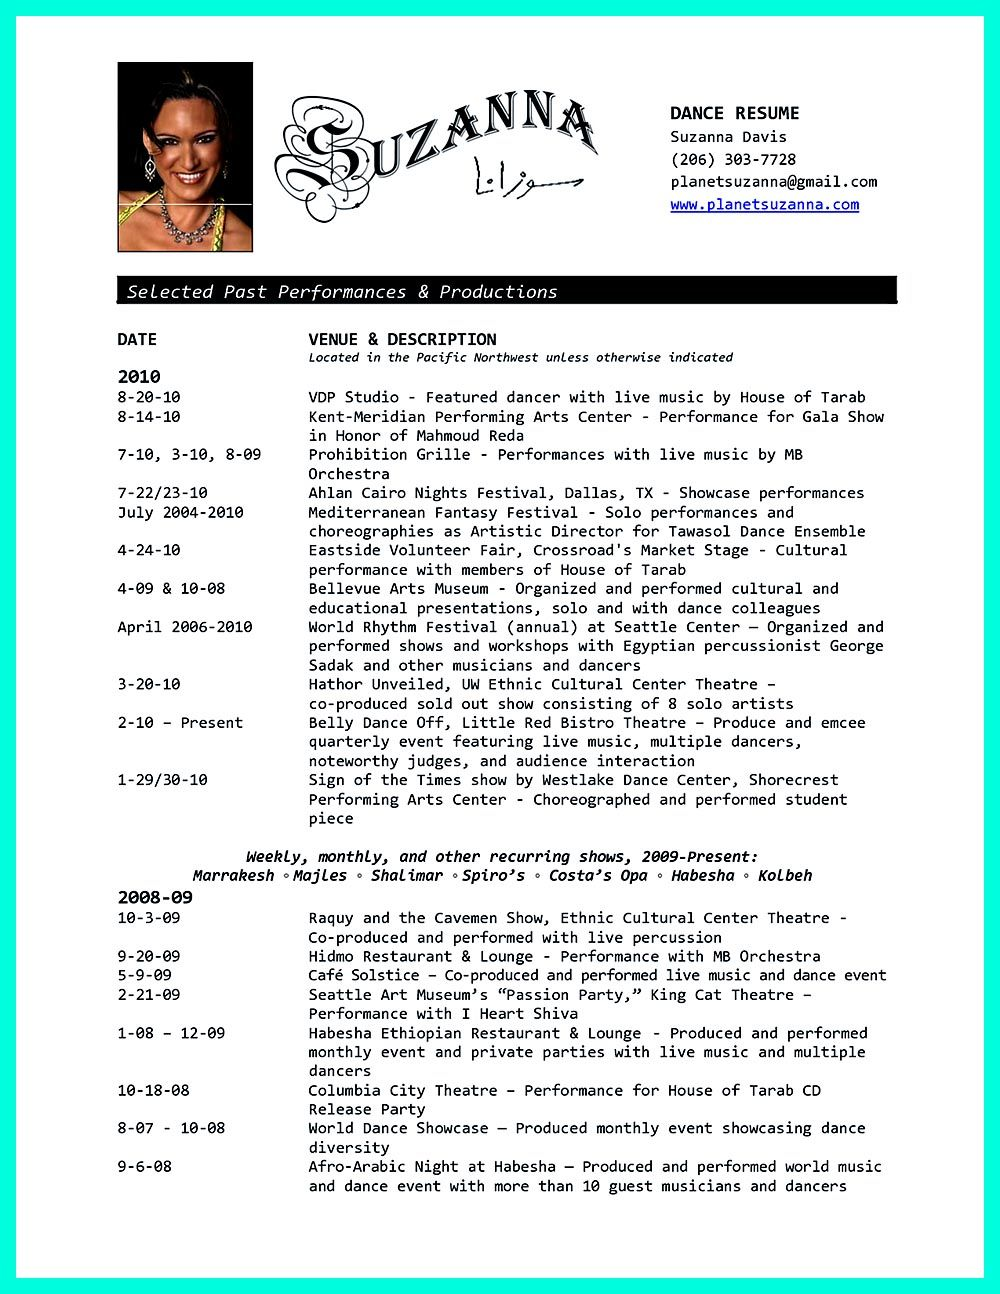 Dance Resume Can Be Used For Both Novice And Professional Dancer Most Job Of Dancer Has Minimum Requirements That Not All Of Dancers Can Meet Howeve Dance